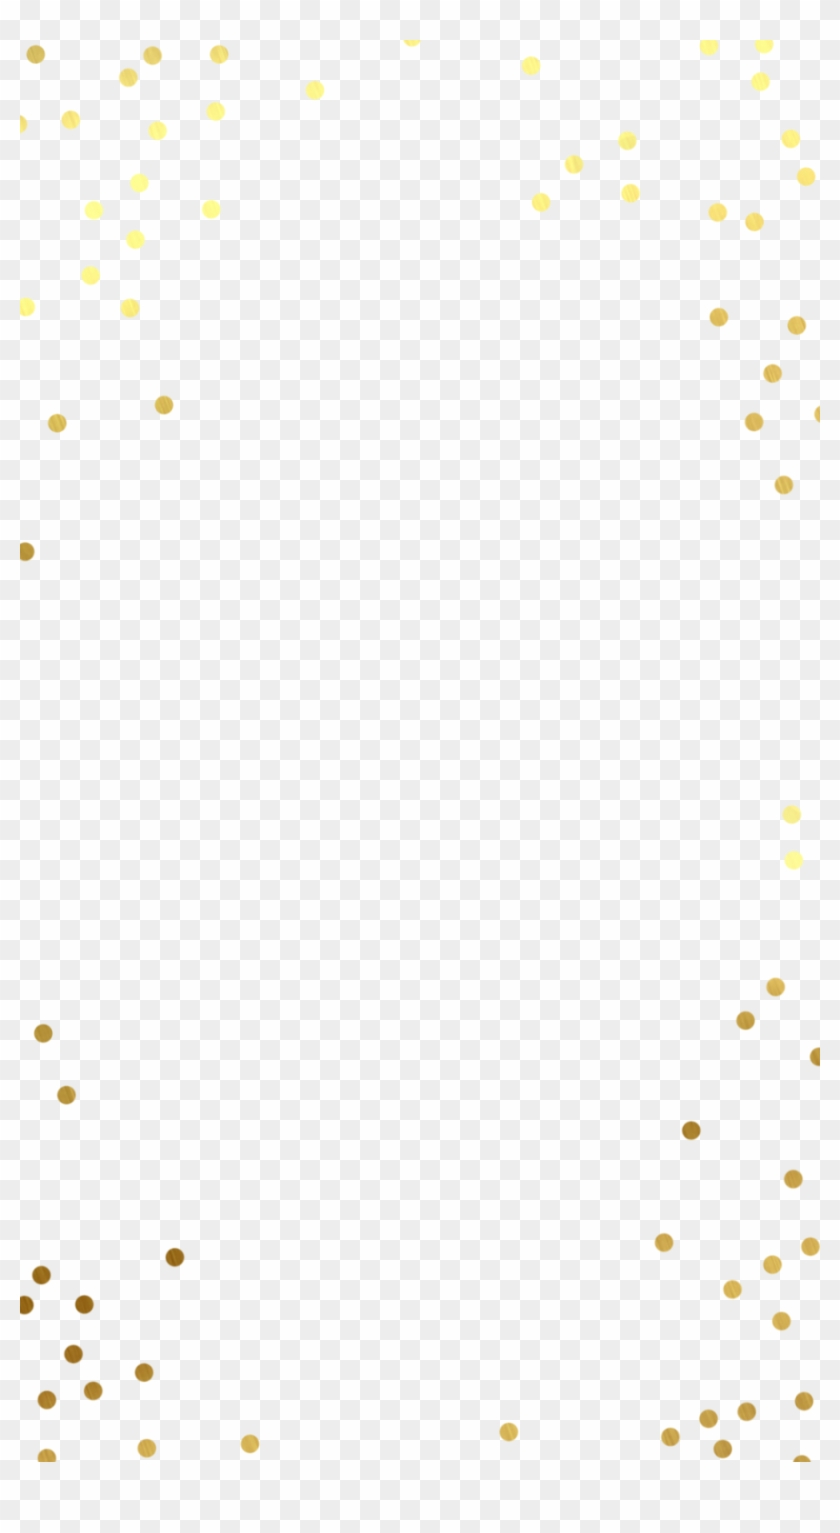 hight resolution of gold confetti png 1080 x 1920 clipart confetti pattern transparent png